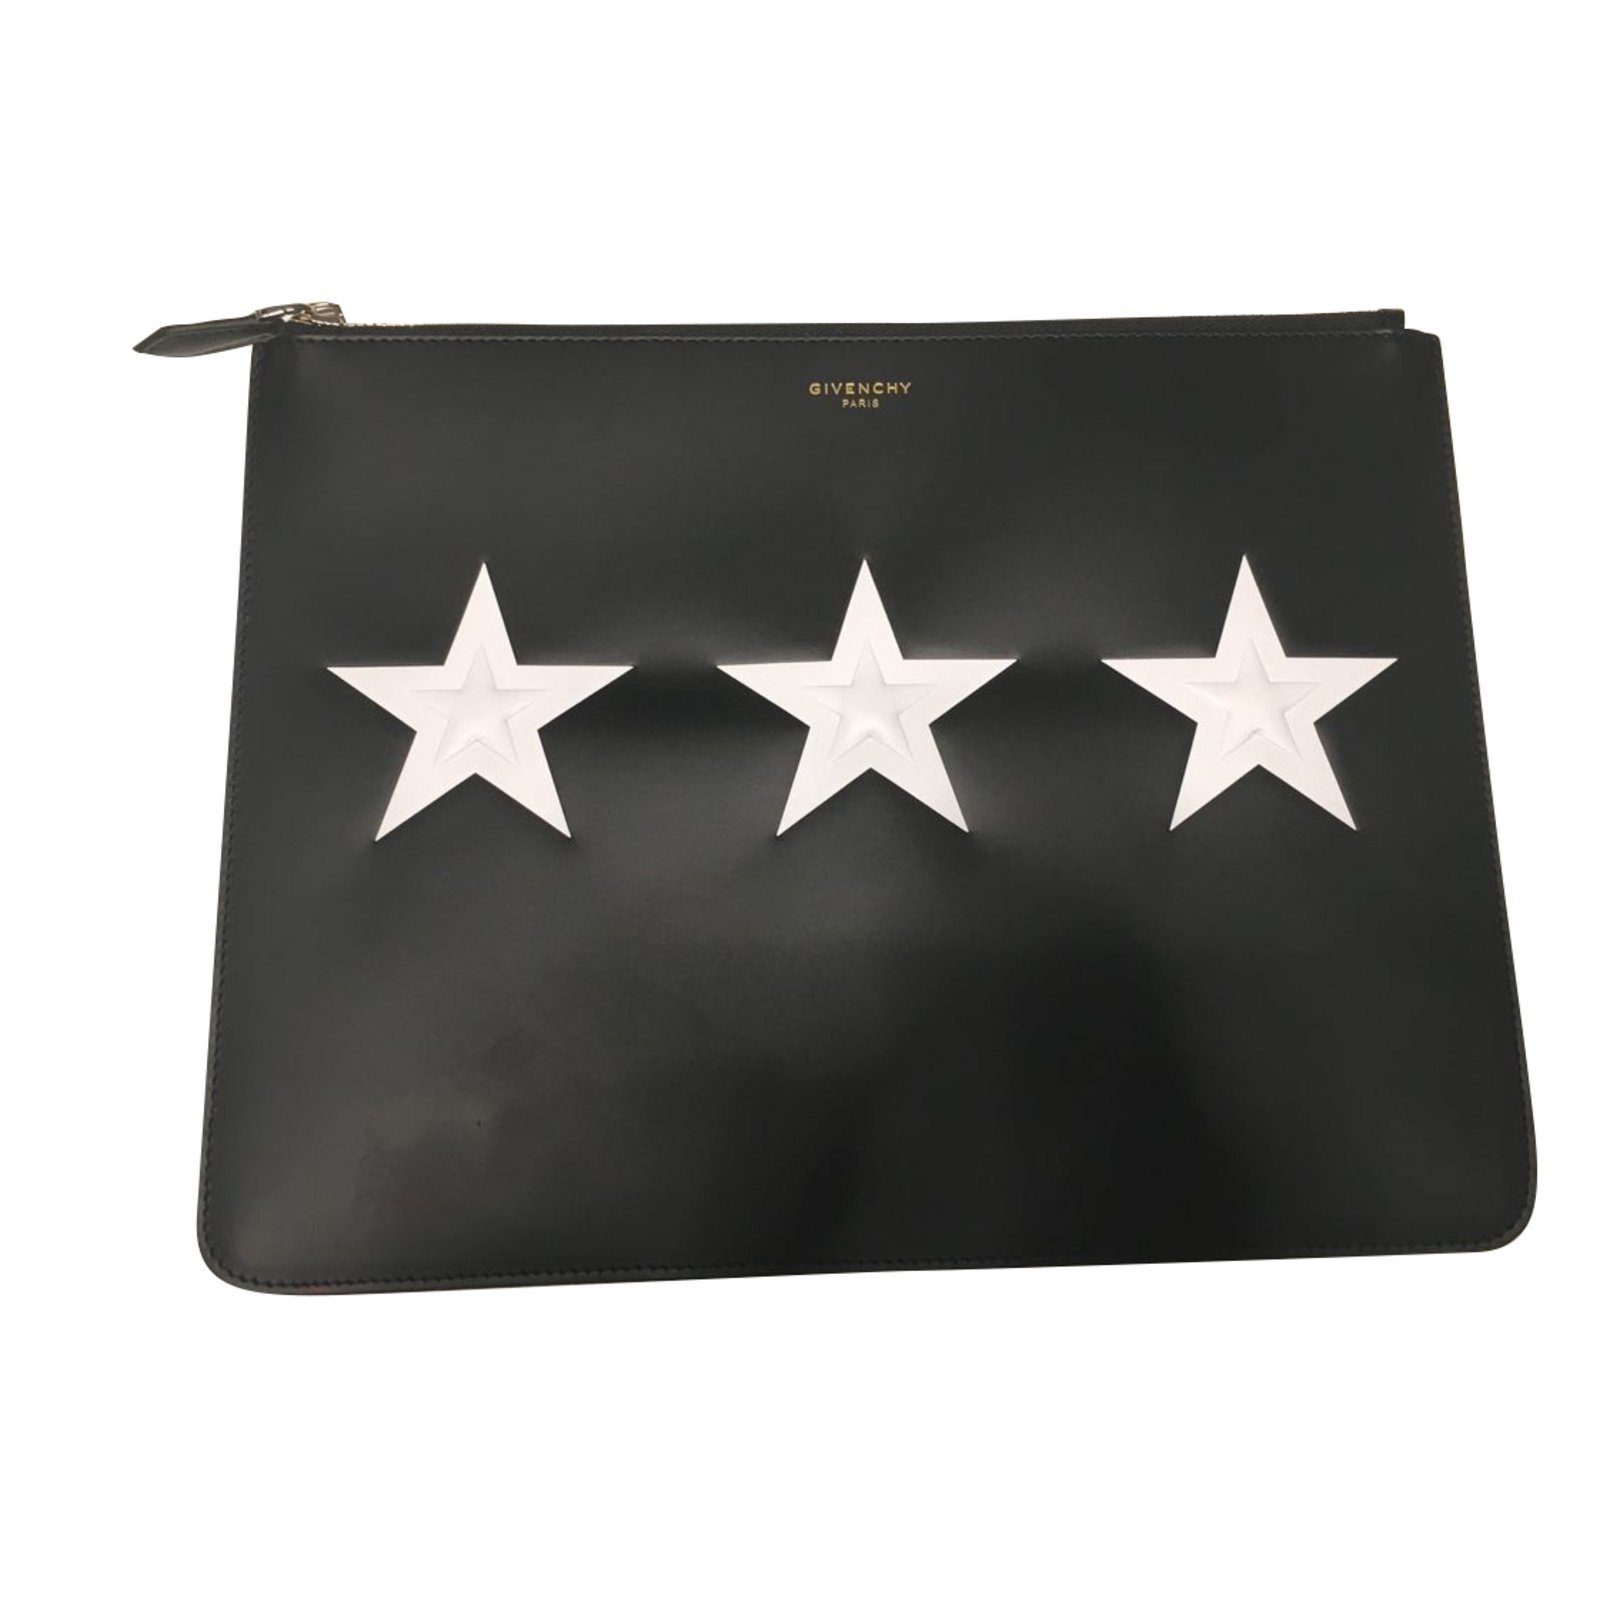 Givenchy Givenchy Clutch Pouch Bag Clutch bags Leather Black ref.48744 668235d5c5689